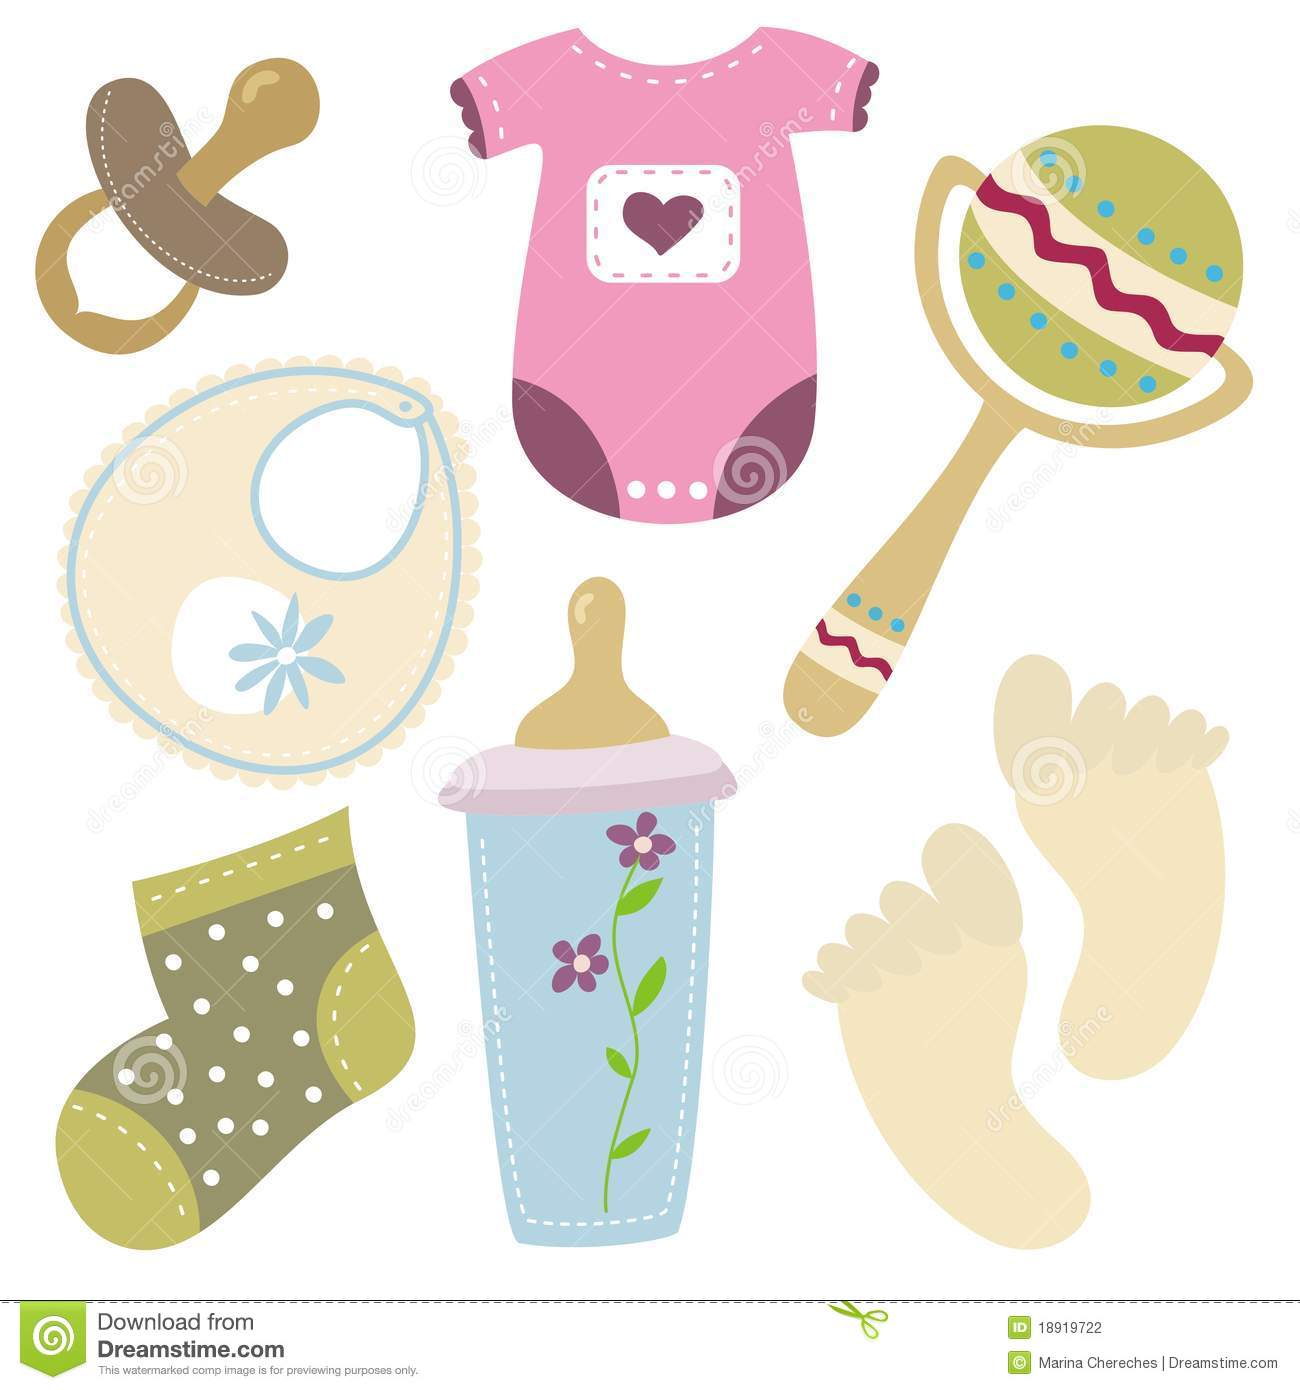 Cartoon baby stuff icons stock vector illustration of family 18919722 cartoon baby stuff icons voltagebd Image collections